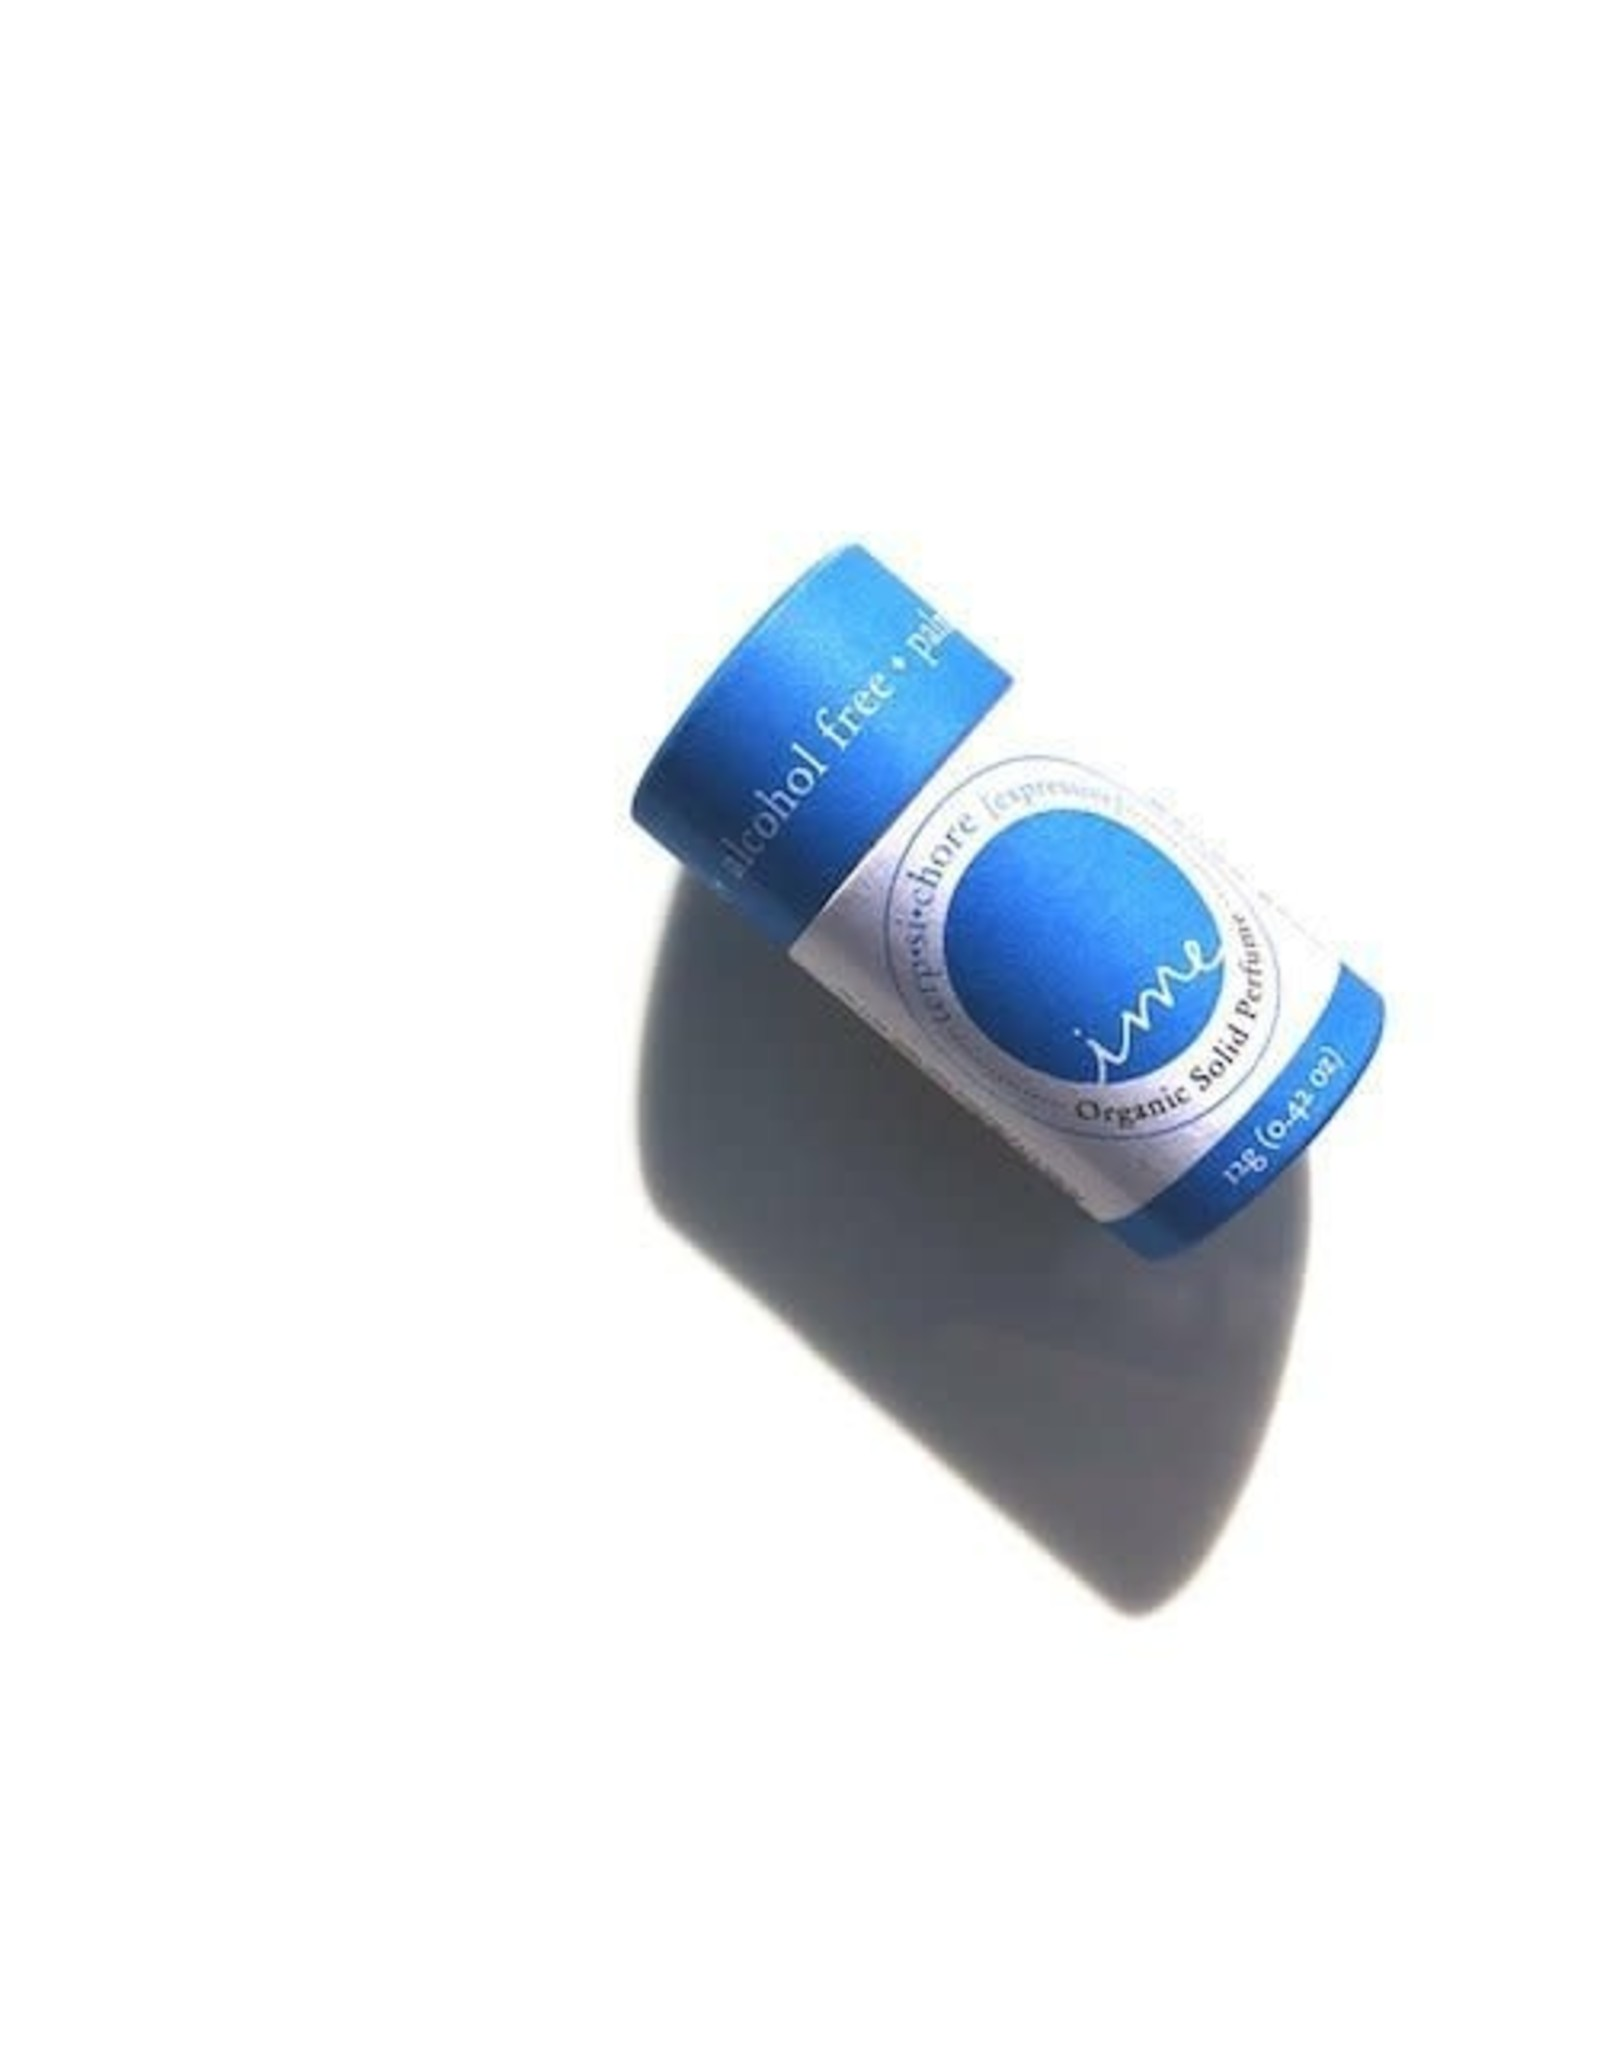 IME Solid Perfume - Terpsichore (Expressive) - 12g